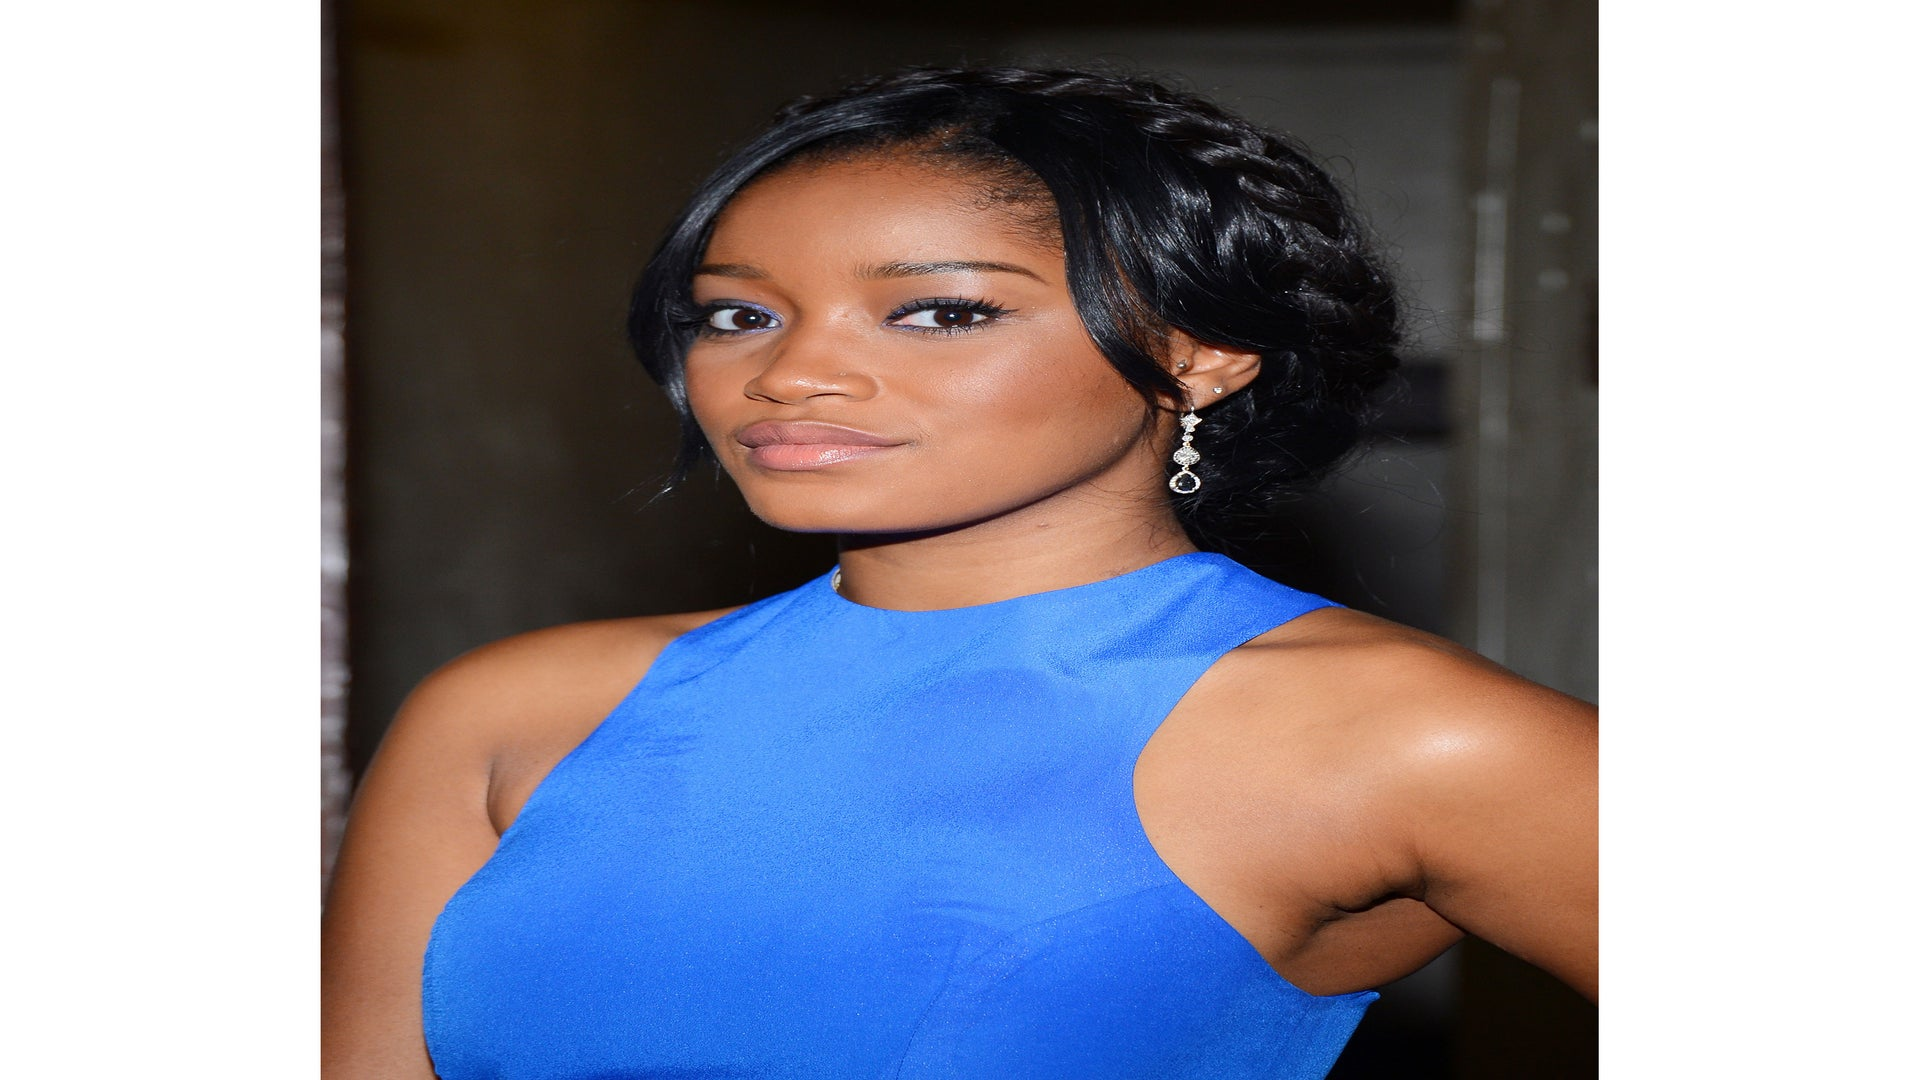 Must-See: Keke Palmer Turns Up the Heat in 'You Got Me' Video